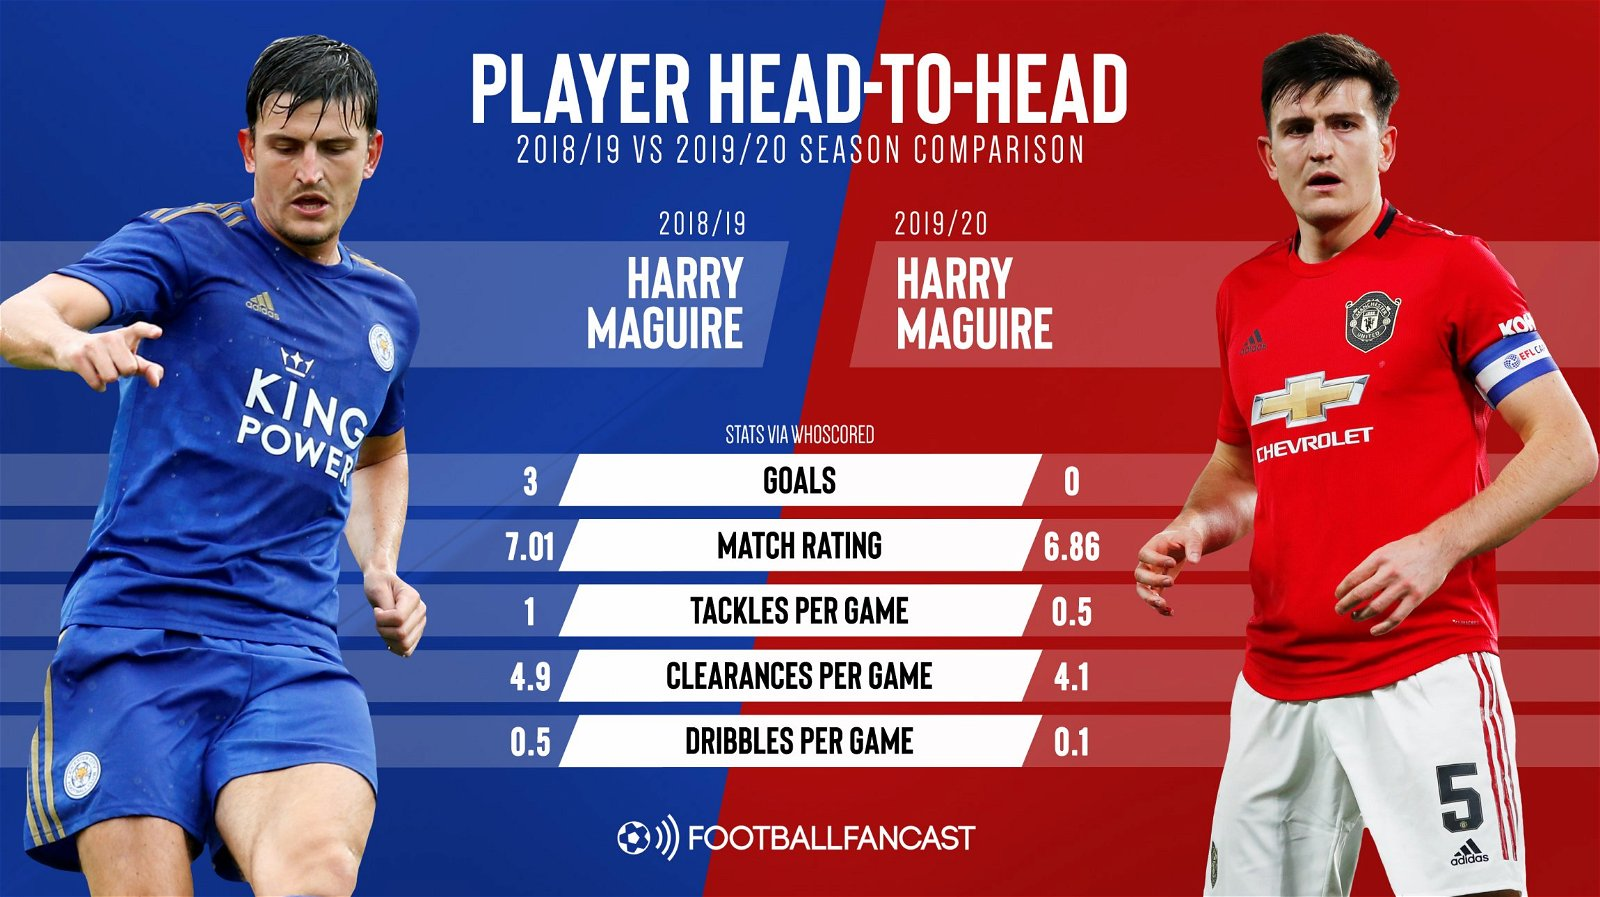 Premier League for Harry Maguire